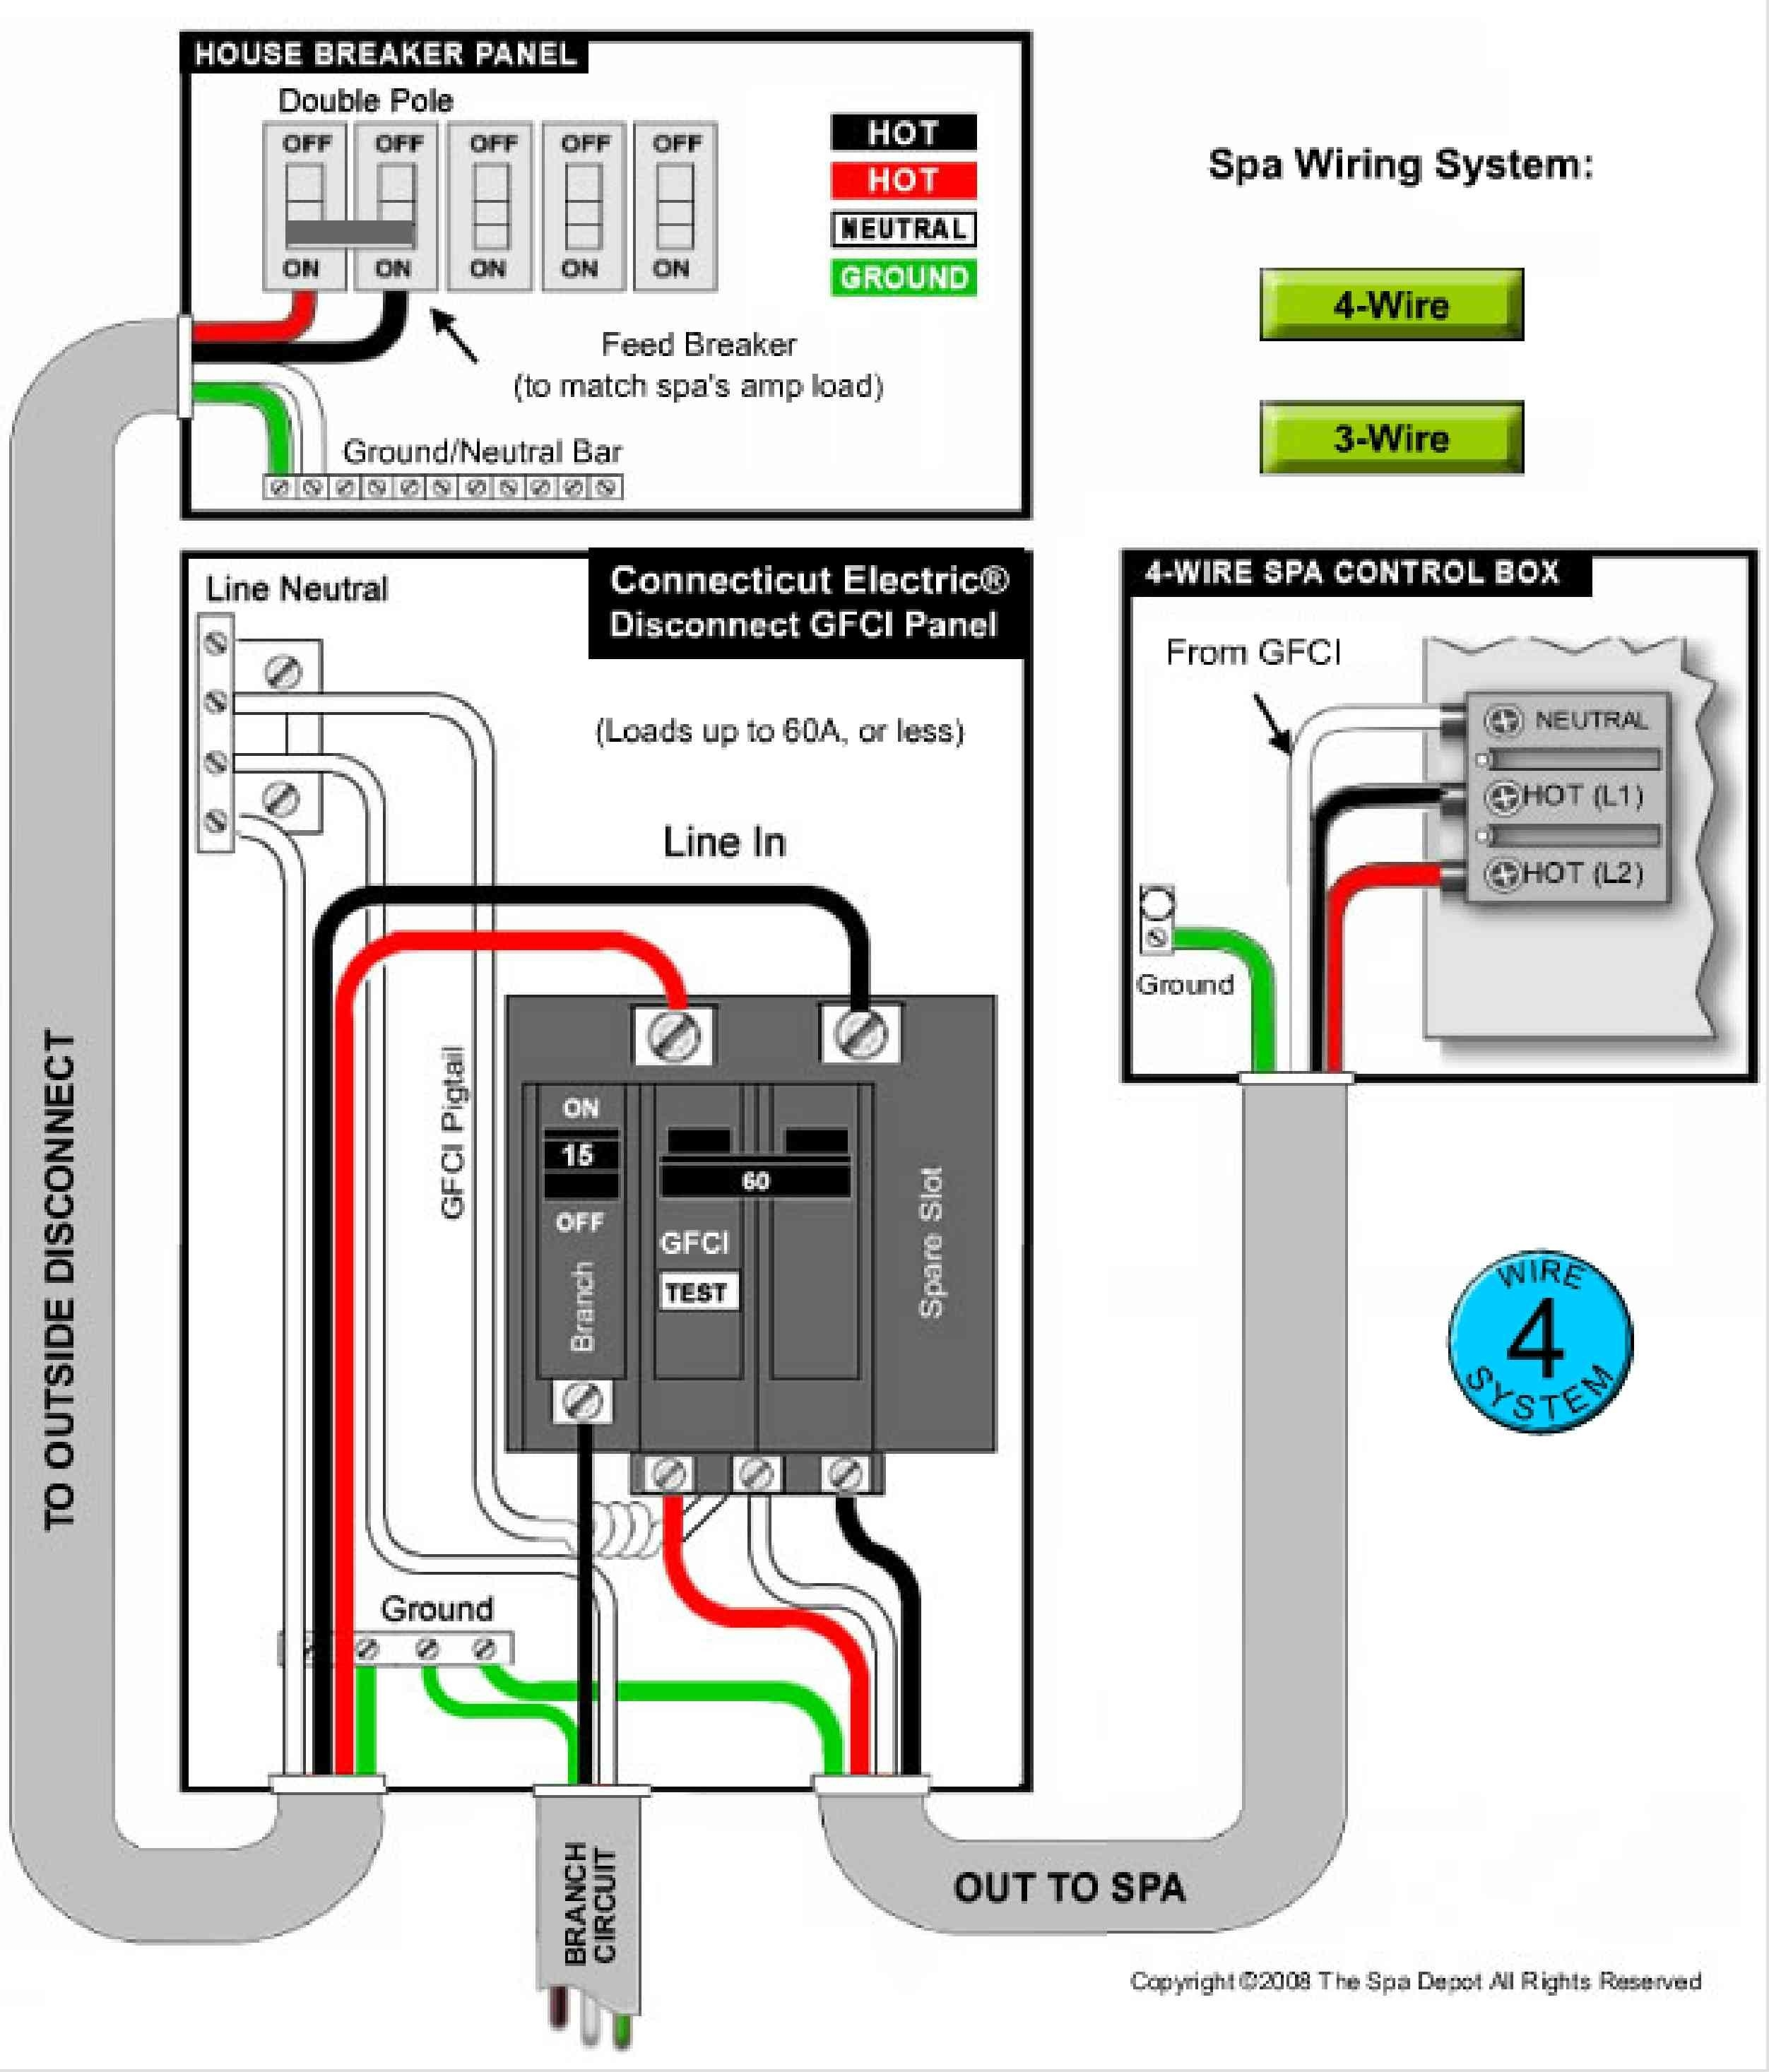 220v hot tub wiring diagram Download-hot tub wiring diagram Collection Luxury Hot Tub Wiring Diagram 14 i DOWNLOAD Wiring Diagram Detail Name hot tub 5-l